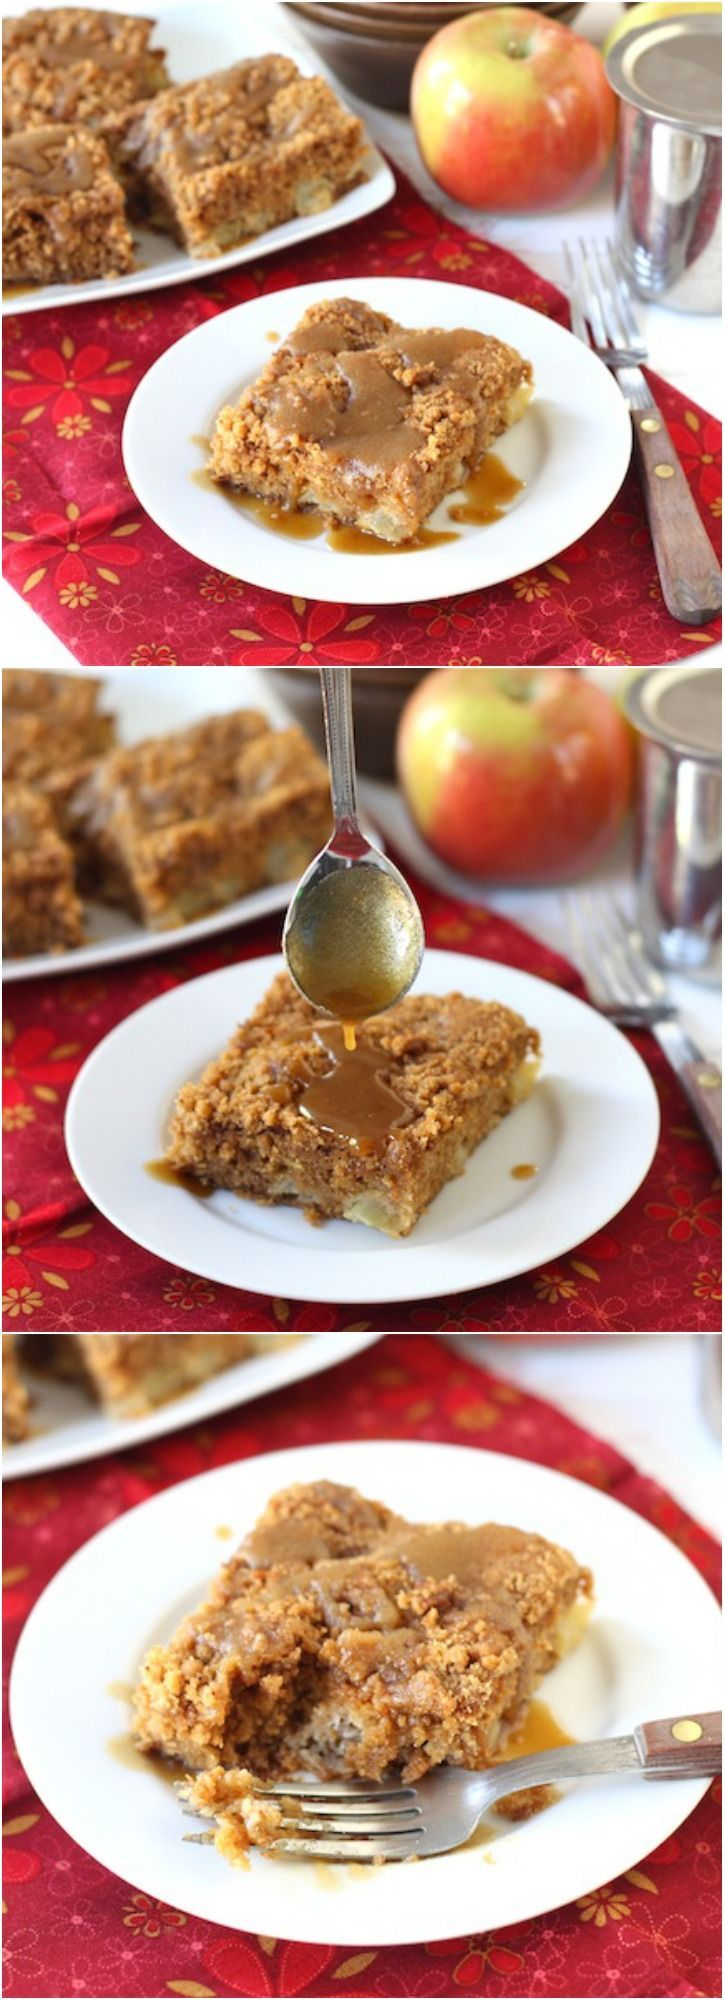 17 Best images about Fall Favorites on Pinterest | Apple ...